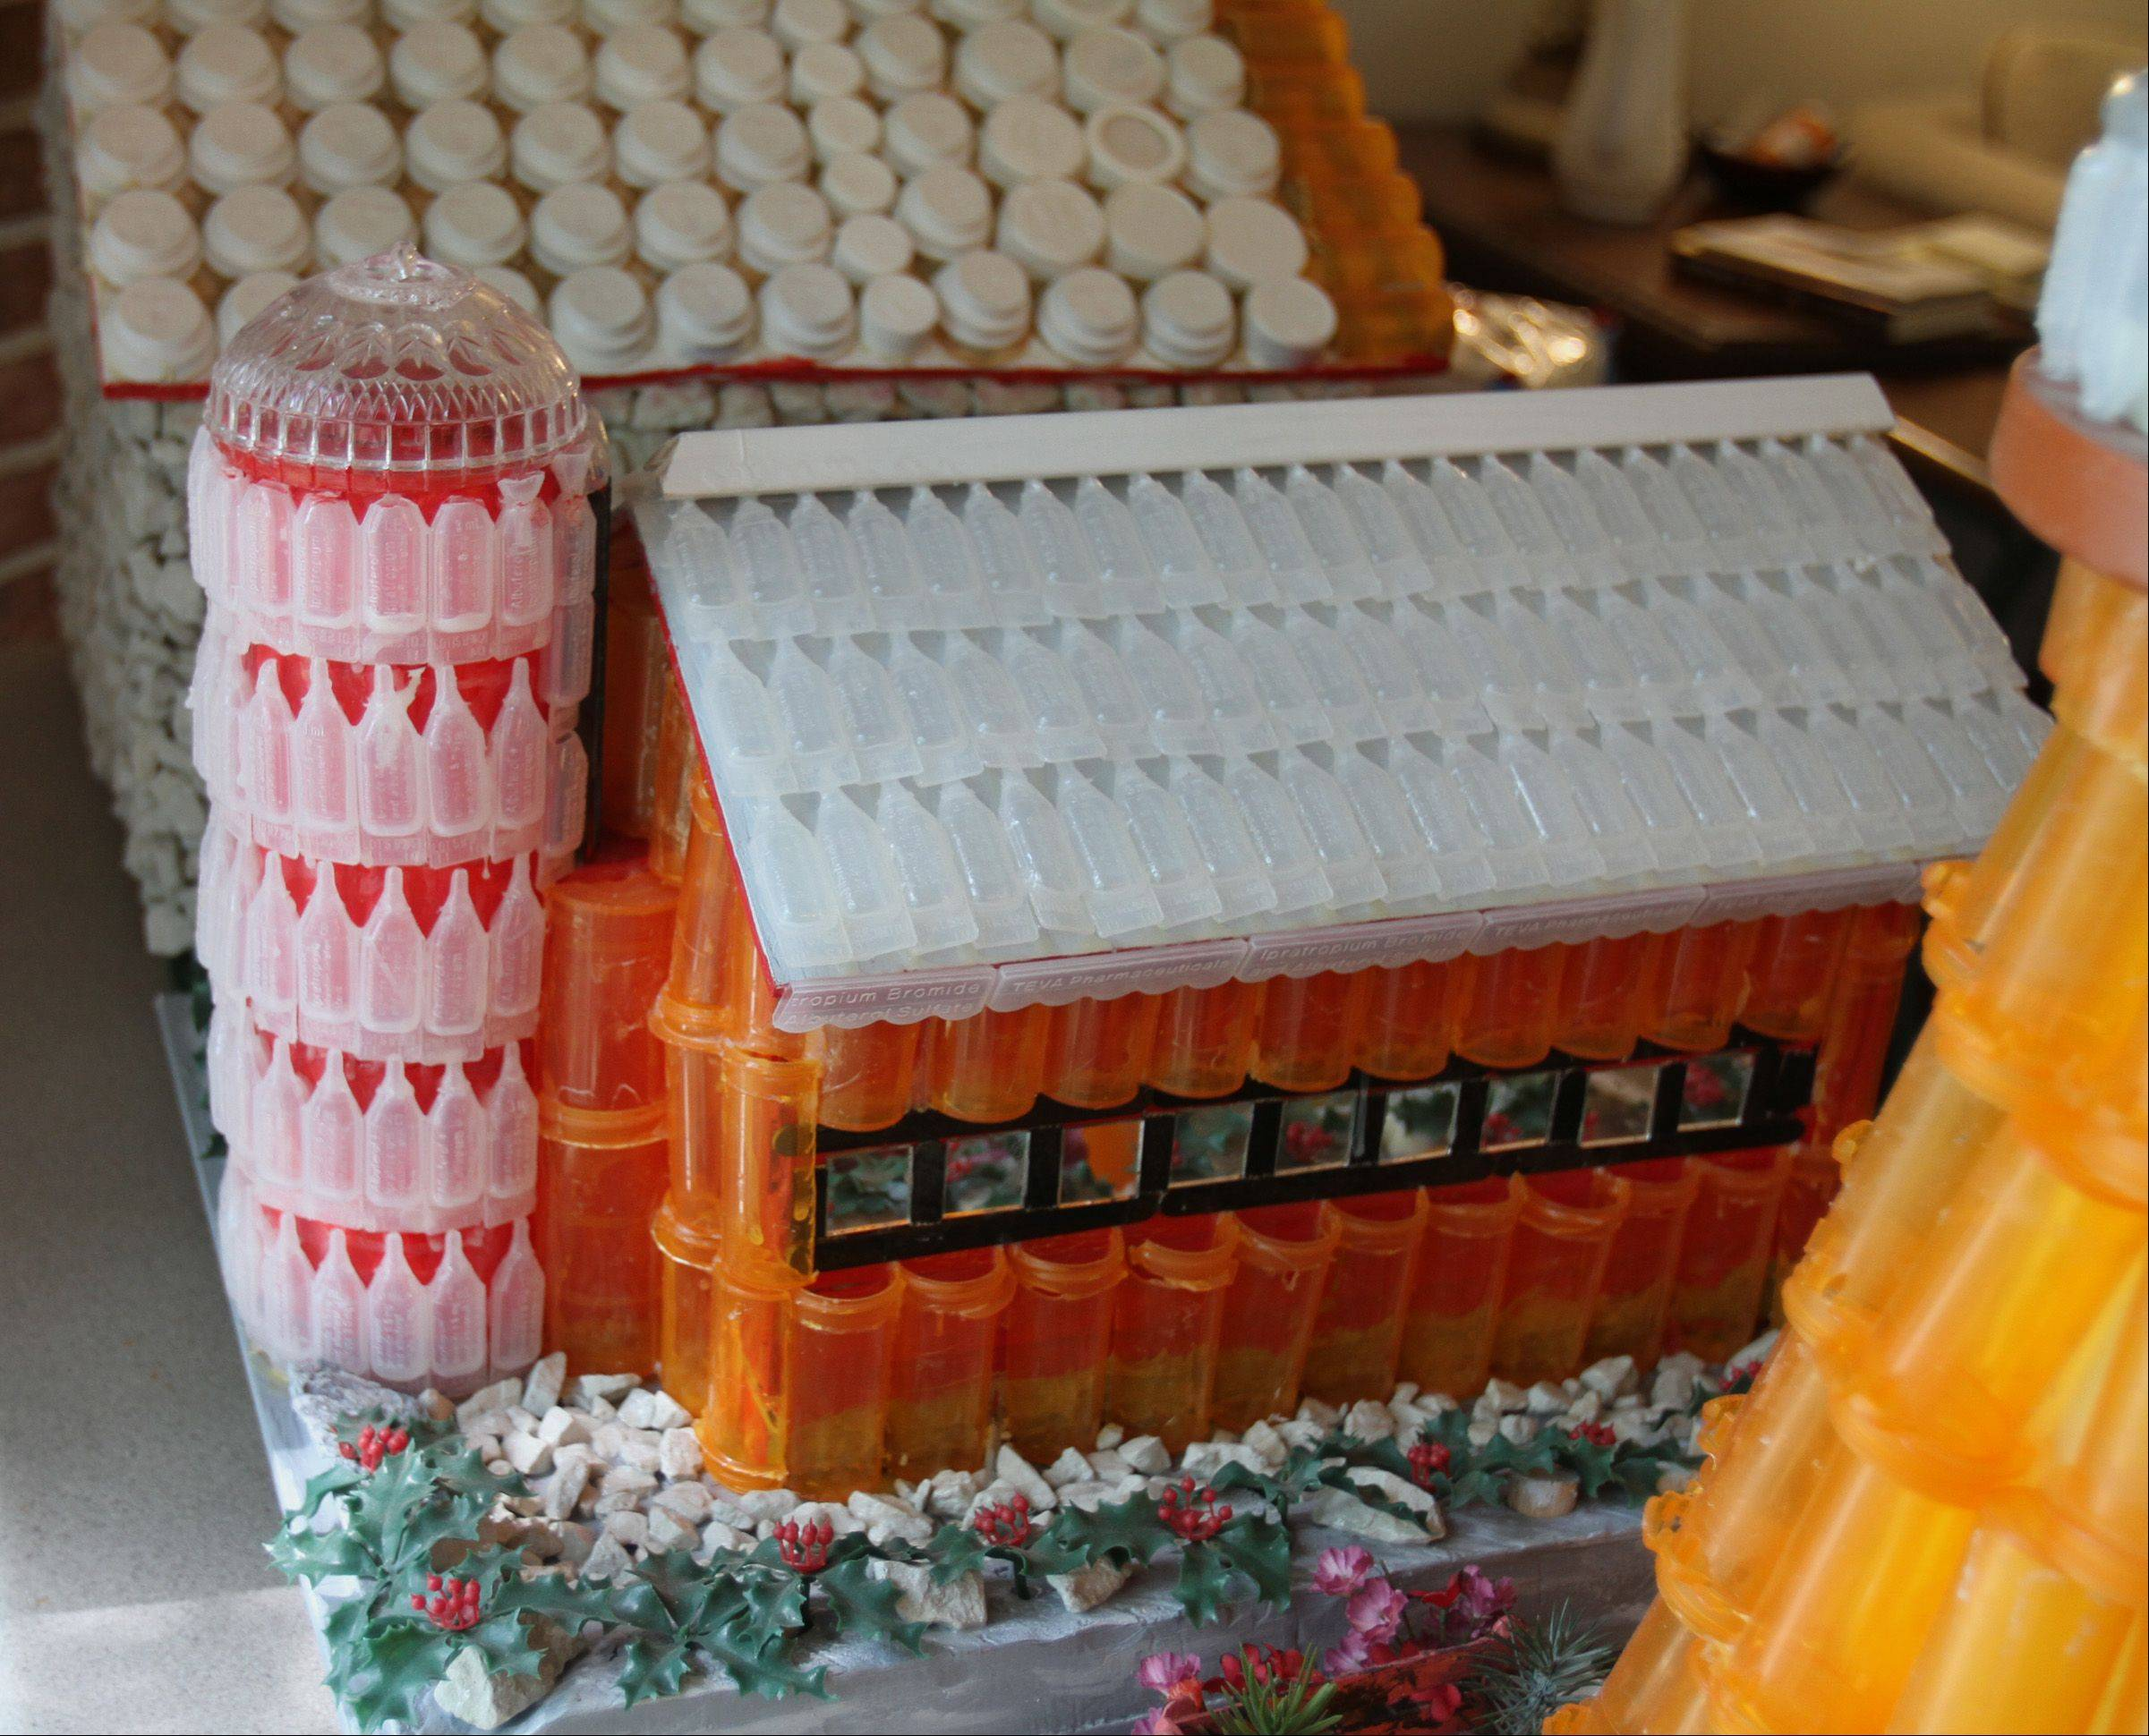 Modeled after the barn and silo on the farm where he grew up, 93-year-old World War II veteran Jake Joseph of Prospect Heights built this piece of folk art with dozens of empty medication containers compiled by his wife, Beatrice.